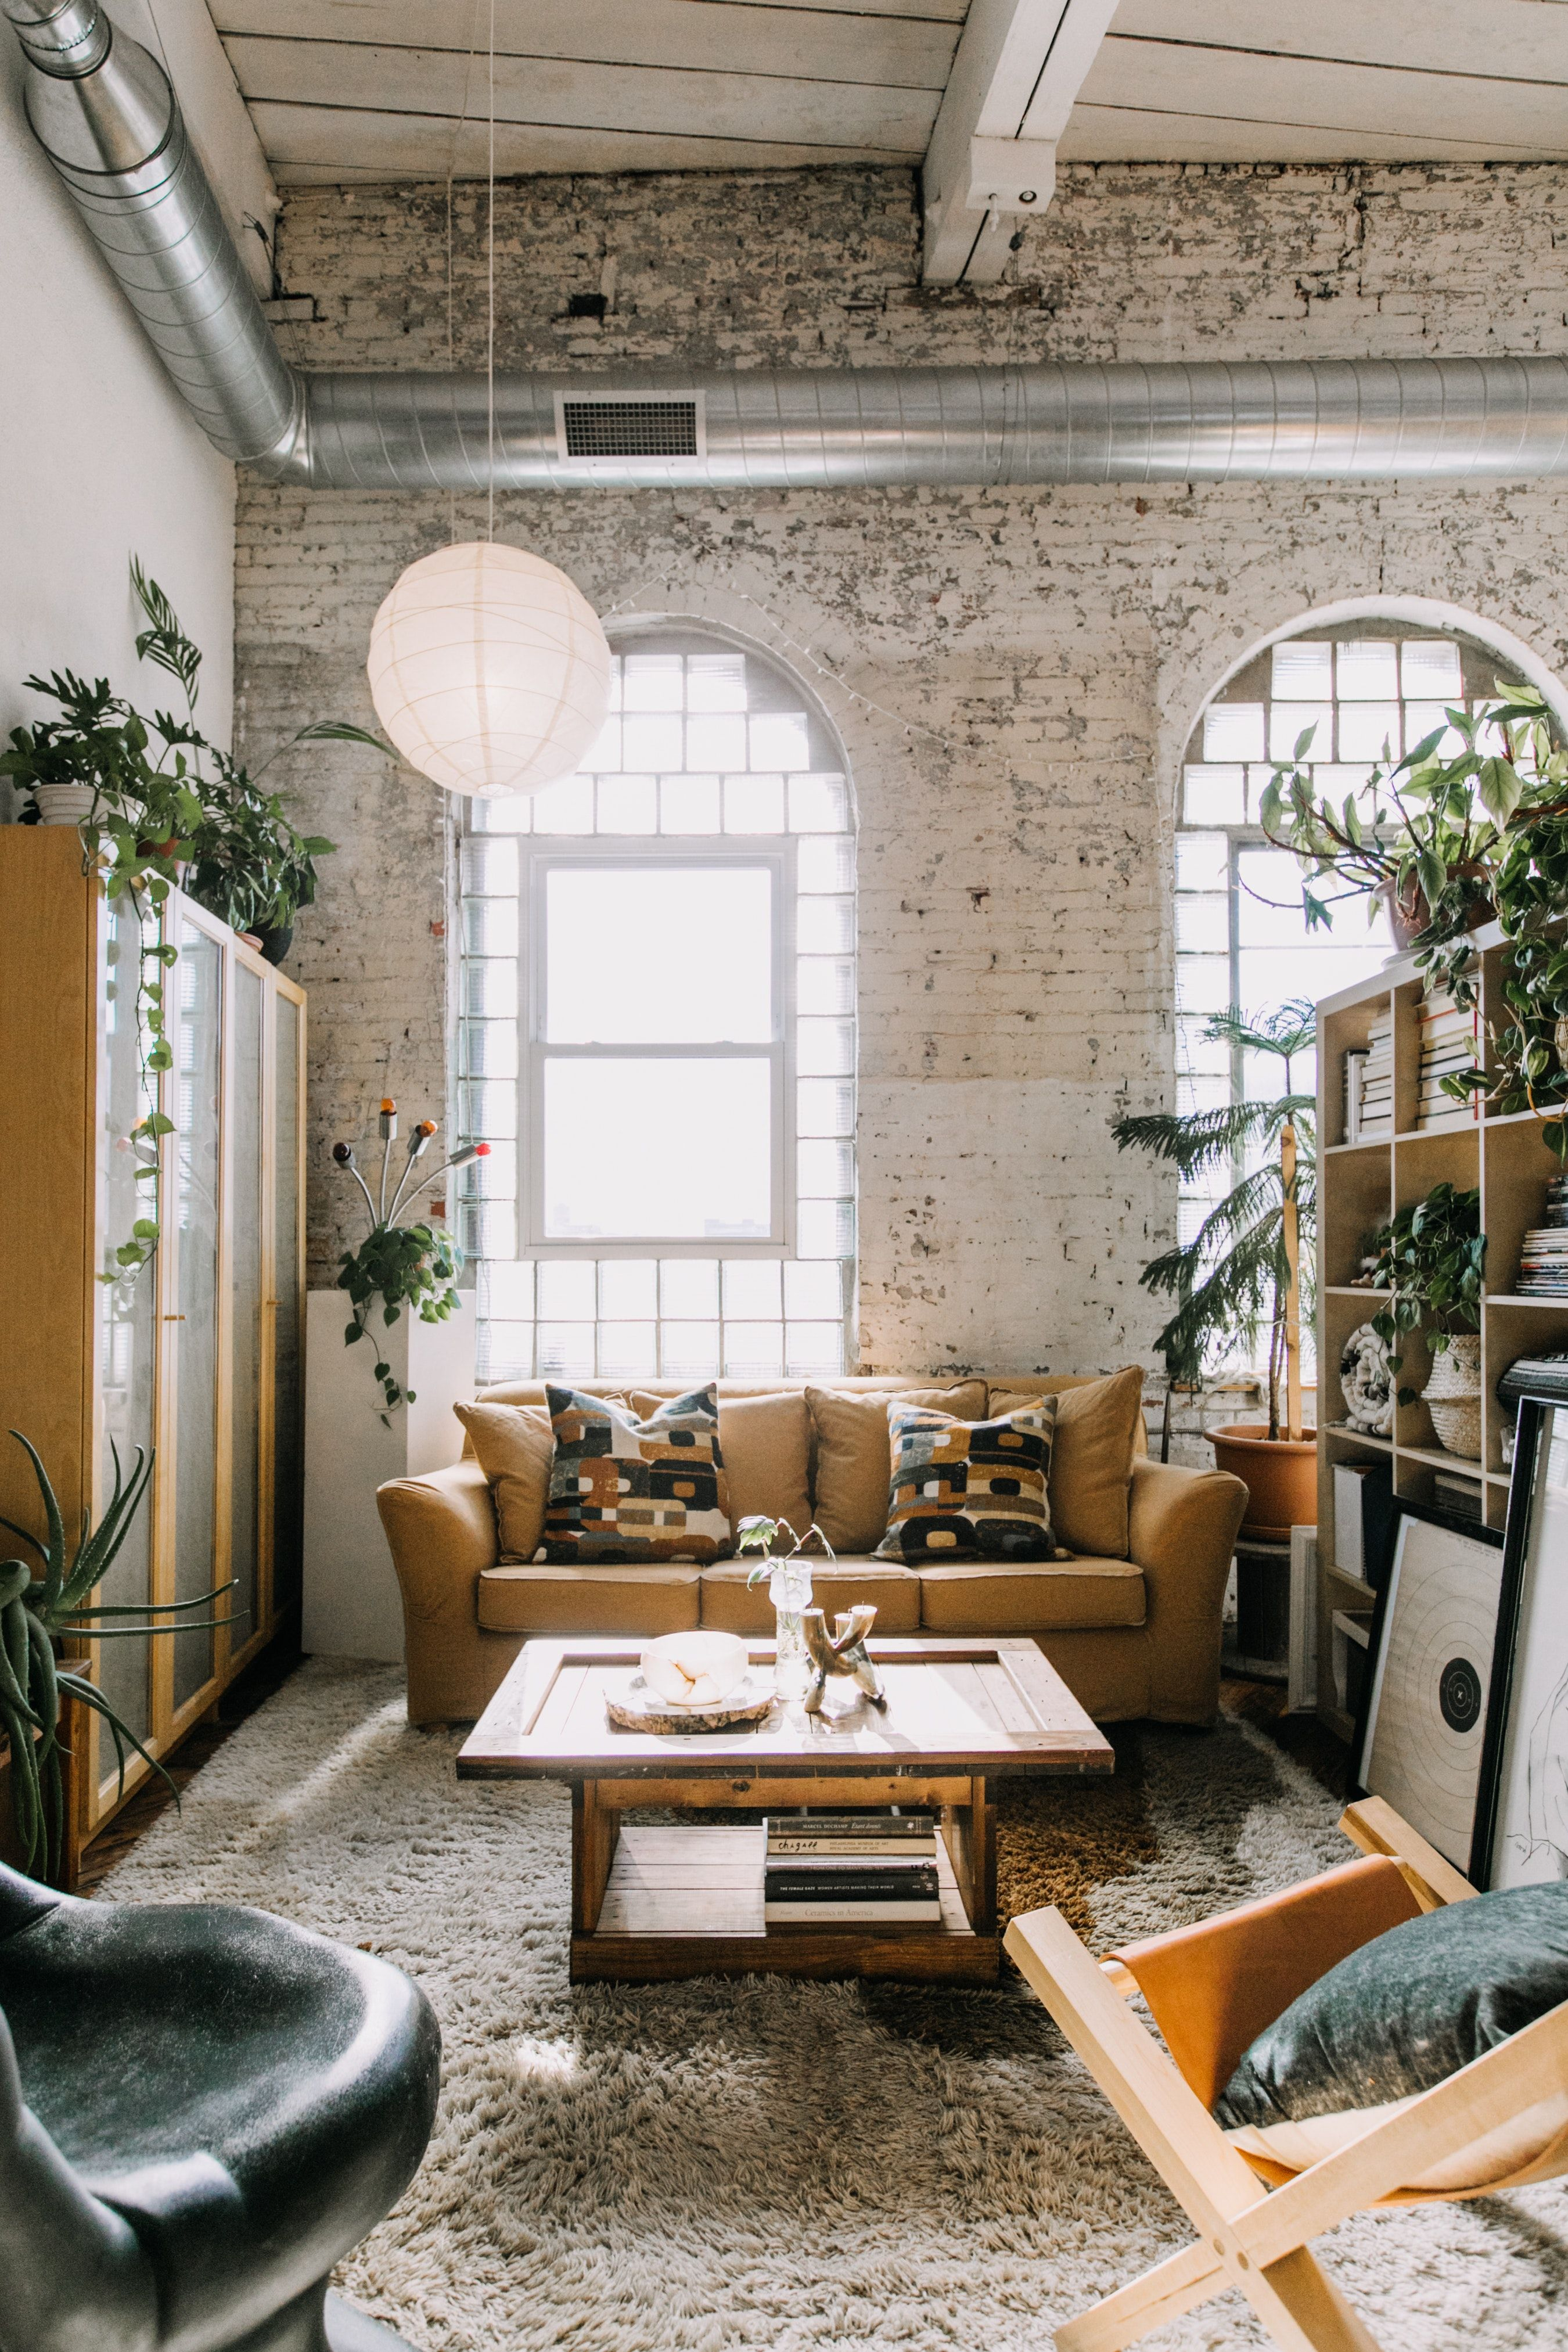 A Sunny, Stunning Loft Apartment in an Old Textile Factory